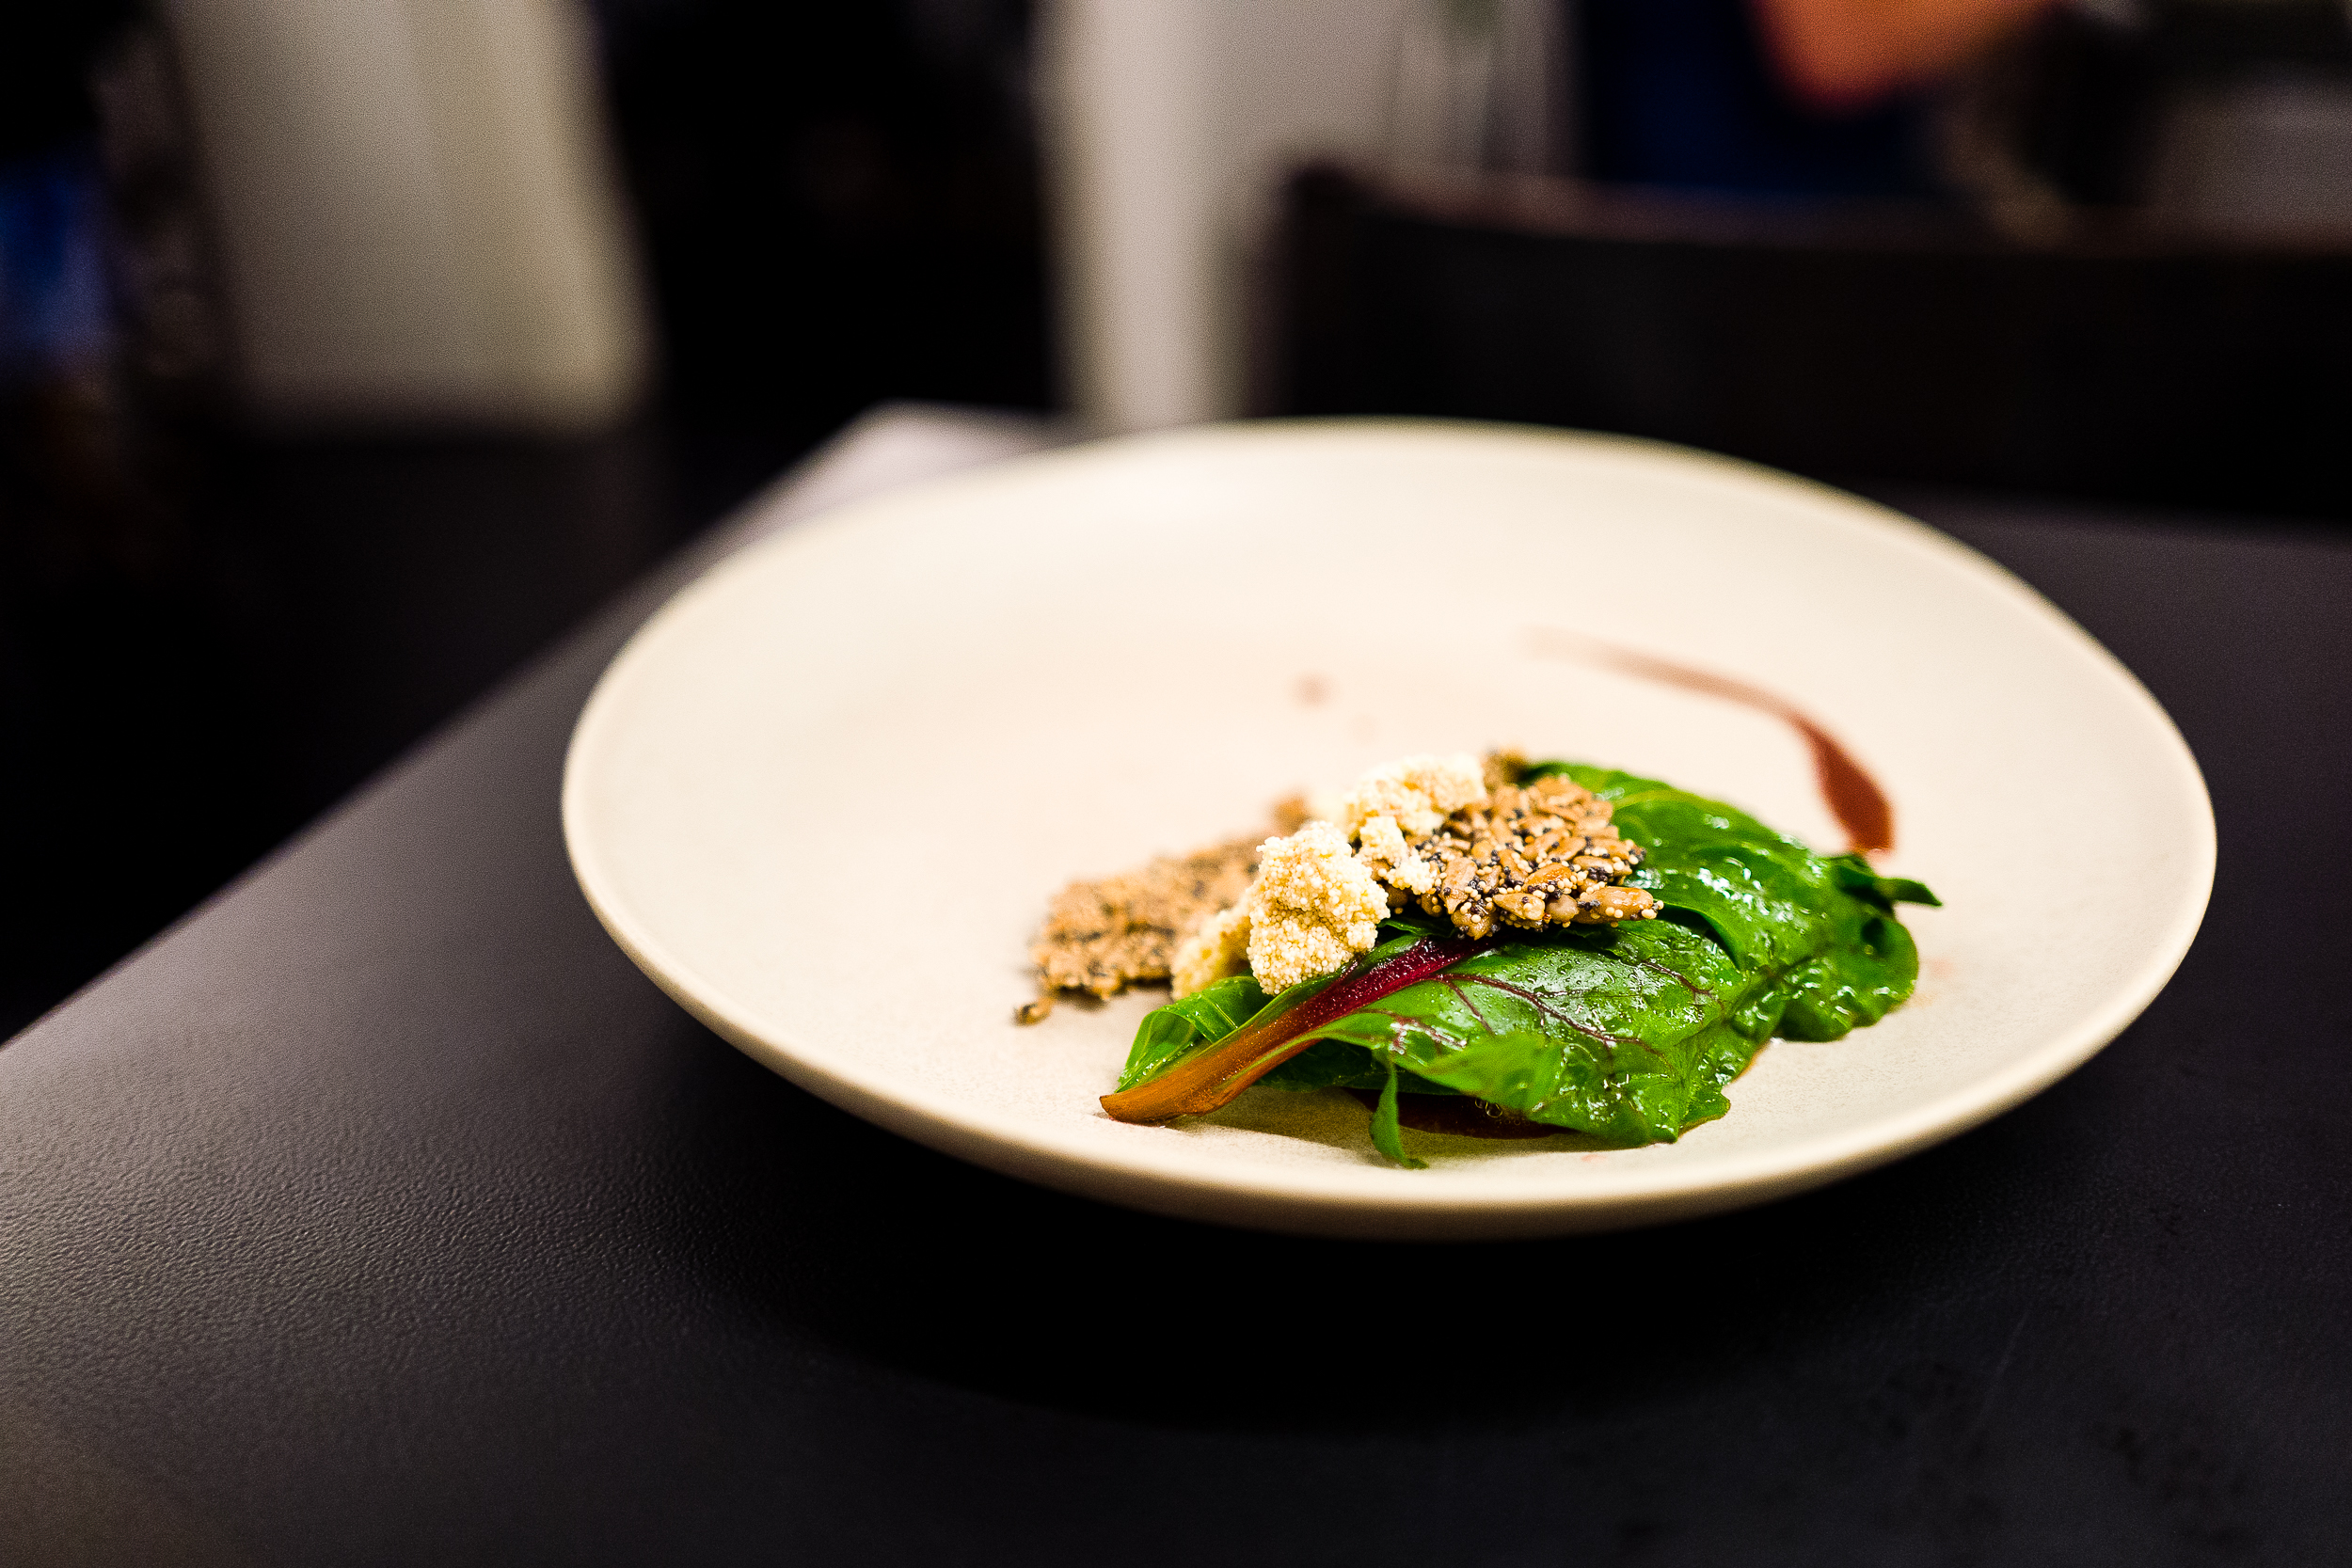 John Dory, swiss chard, John Dory roe, crunchy seeds, and a miso butter sauce.